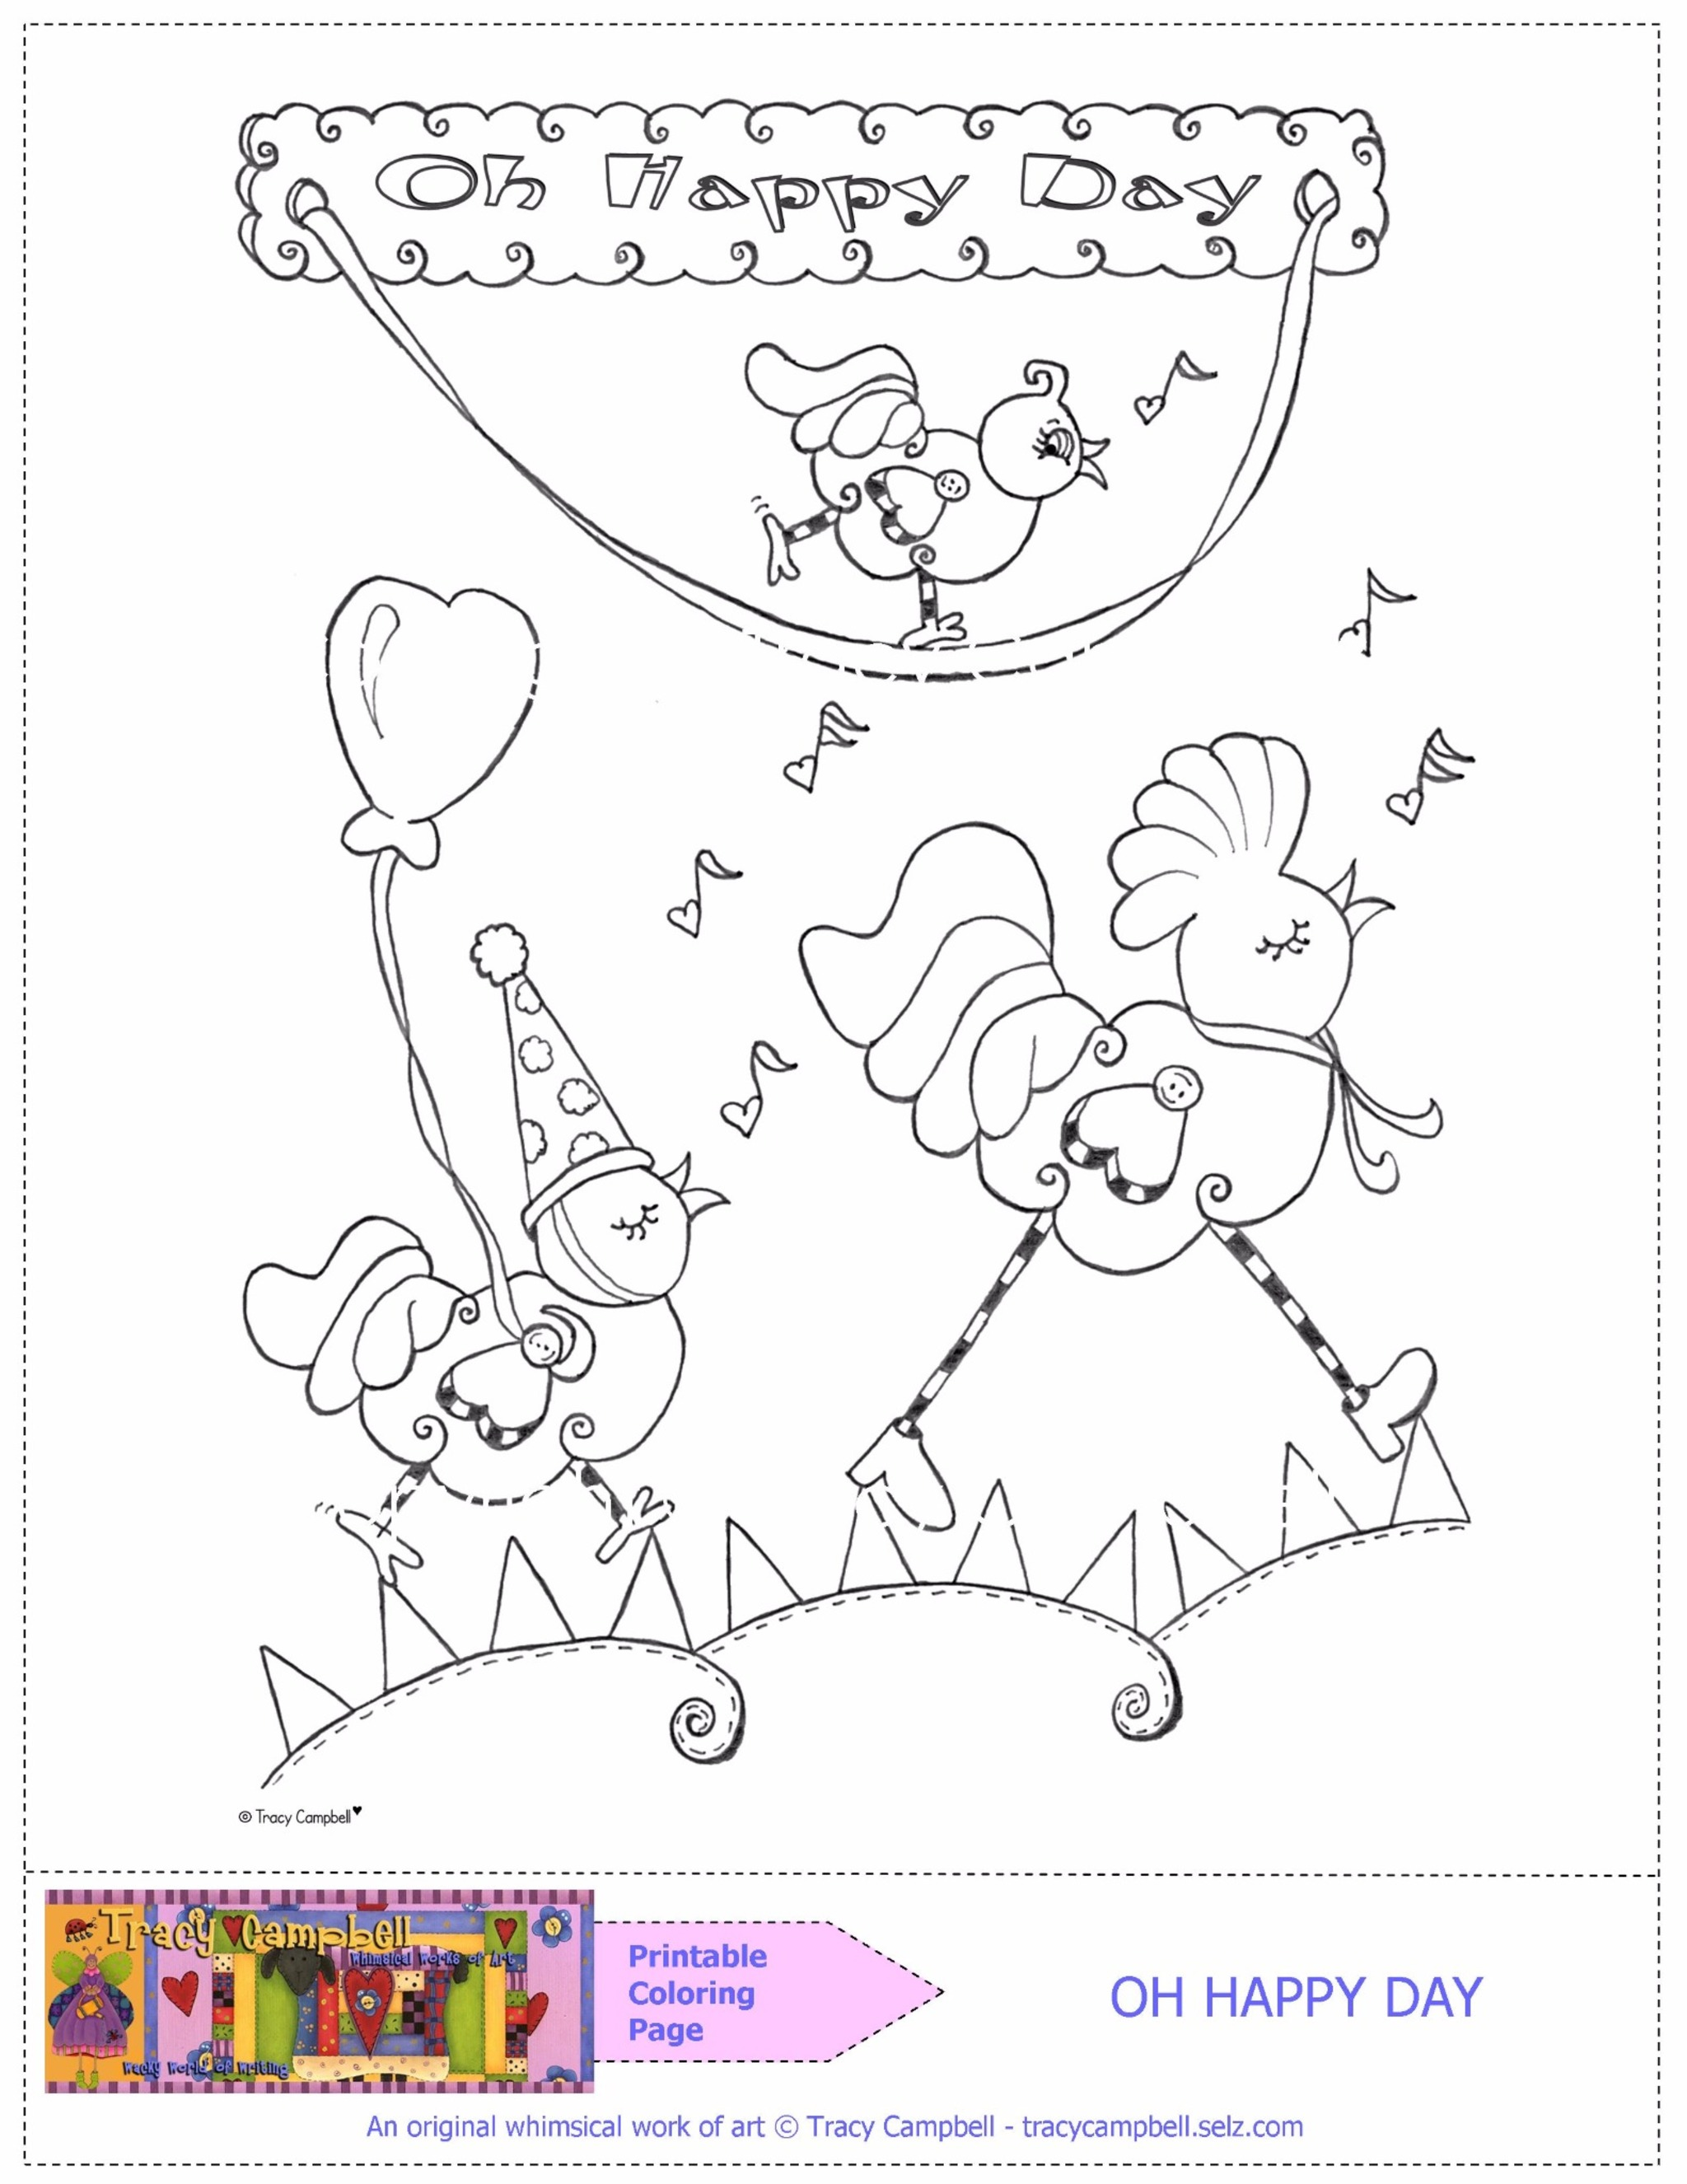 PRINTABLE COLORING PAGE—OH HAPPY DAY